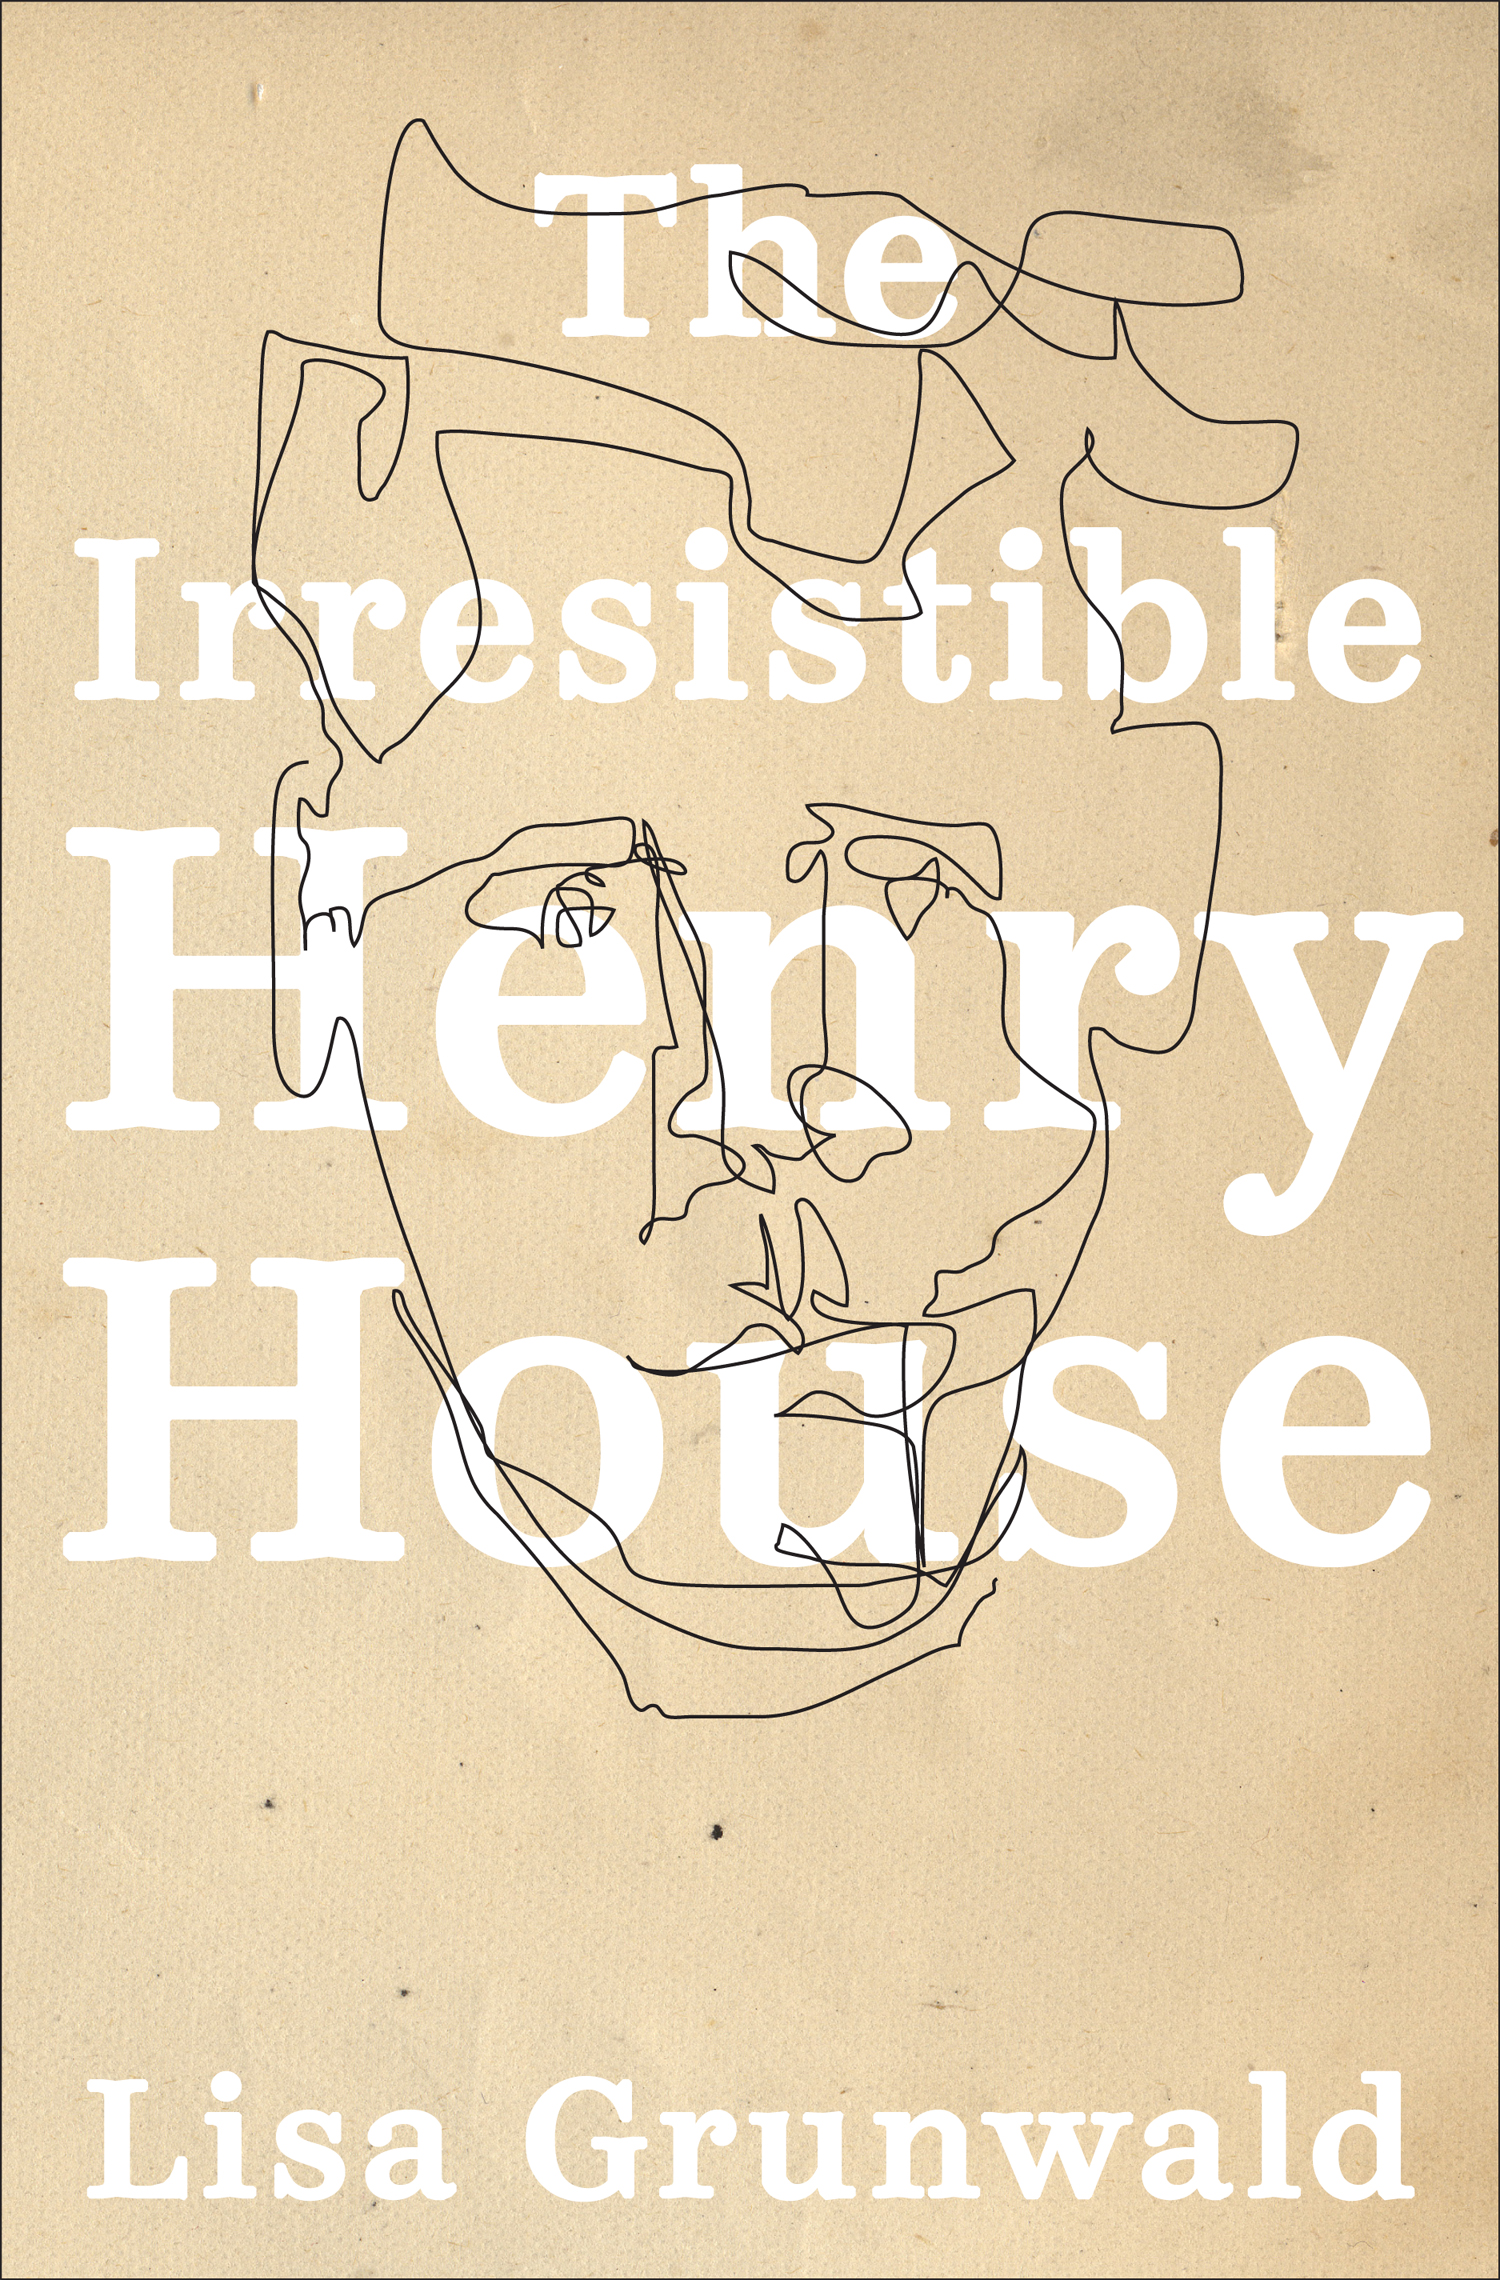 IRRESISTIBLE-HENRY-HOUSE-comp-ss6.jpg